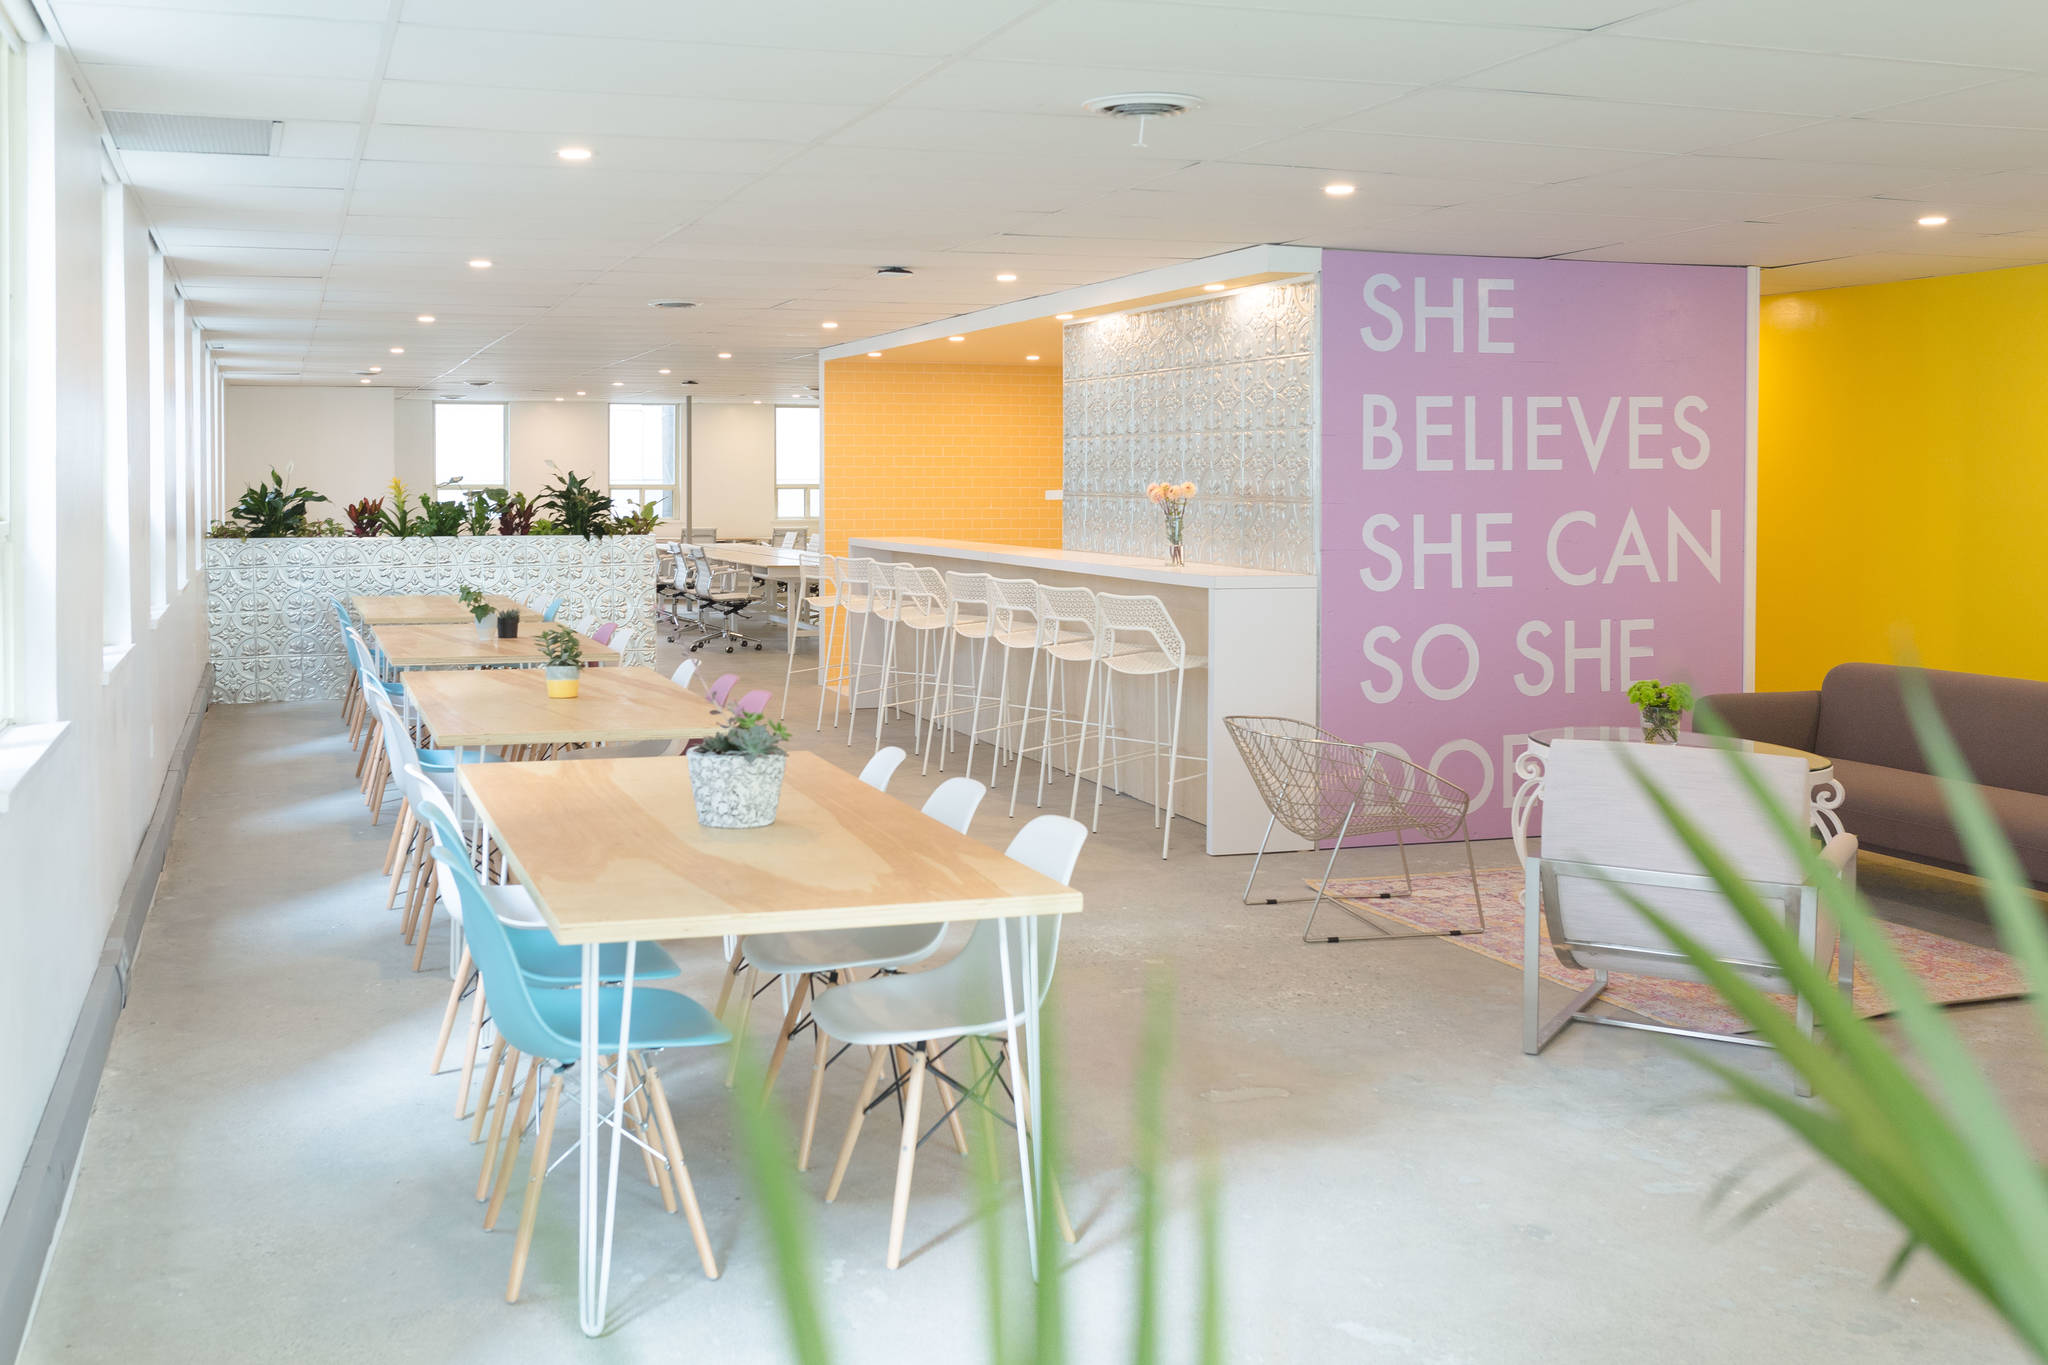 Toronto's newest coworking space is for women only